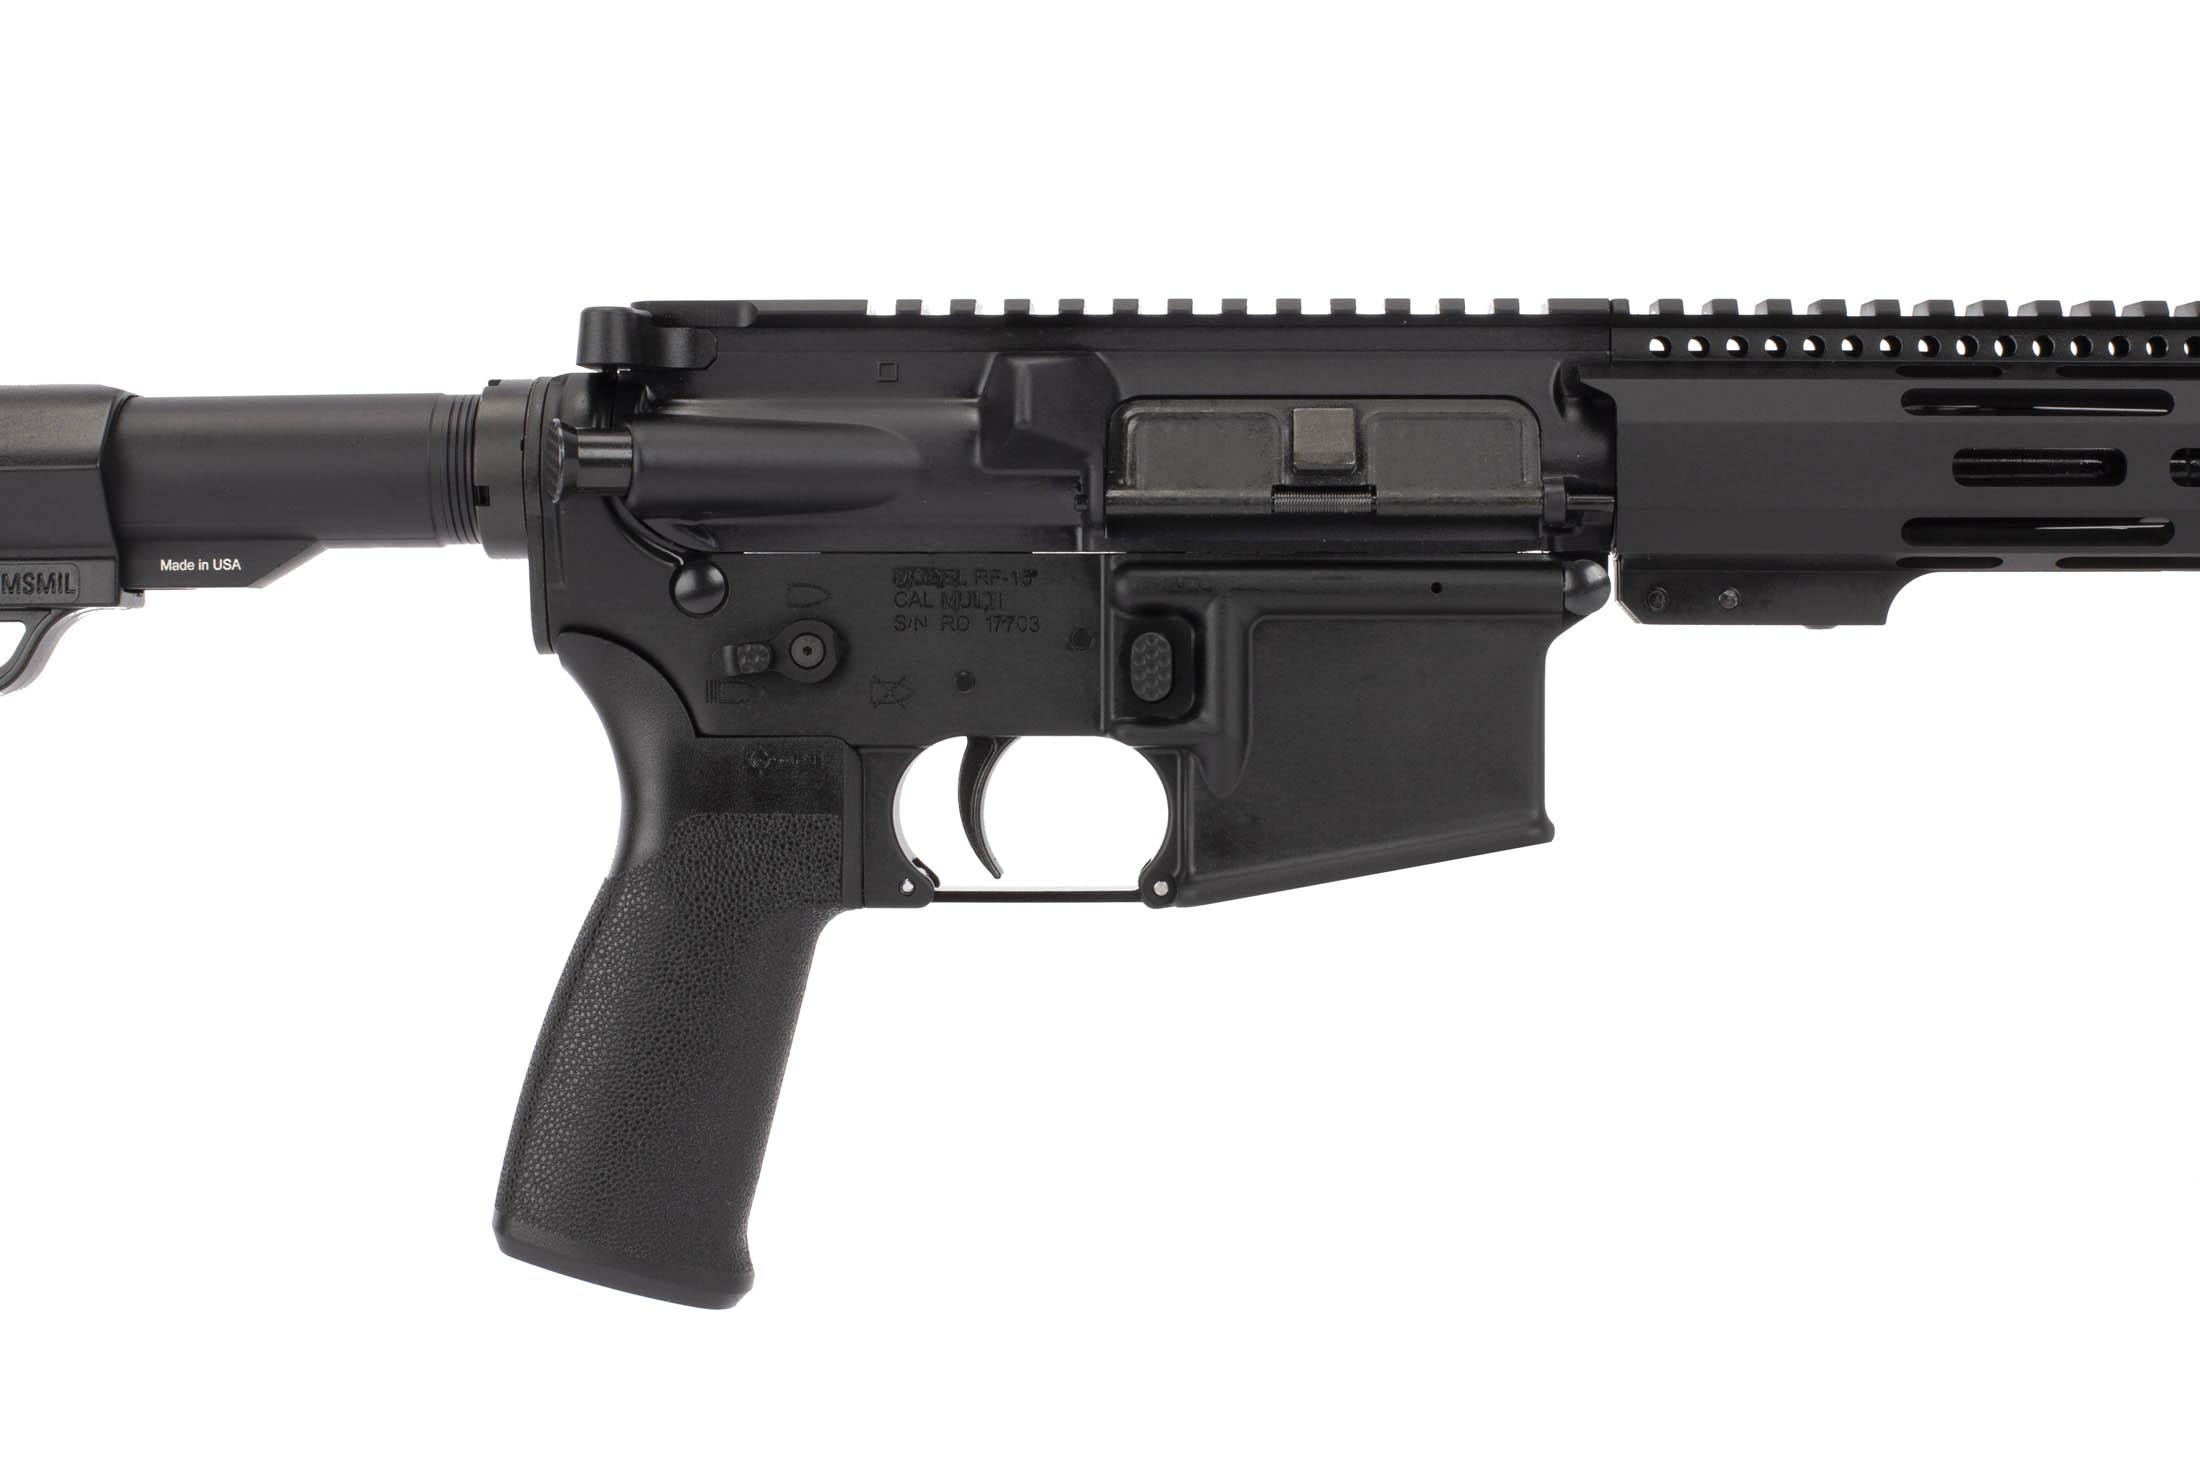 Radical Firearms 16 inch 300 BLK AR-15 carbine has an ambi safety, enhanced mag release, and Mission First Tactical grip.